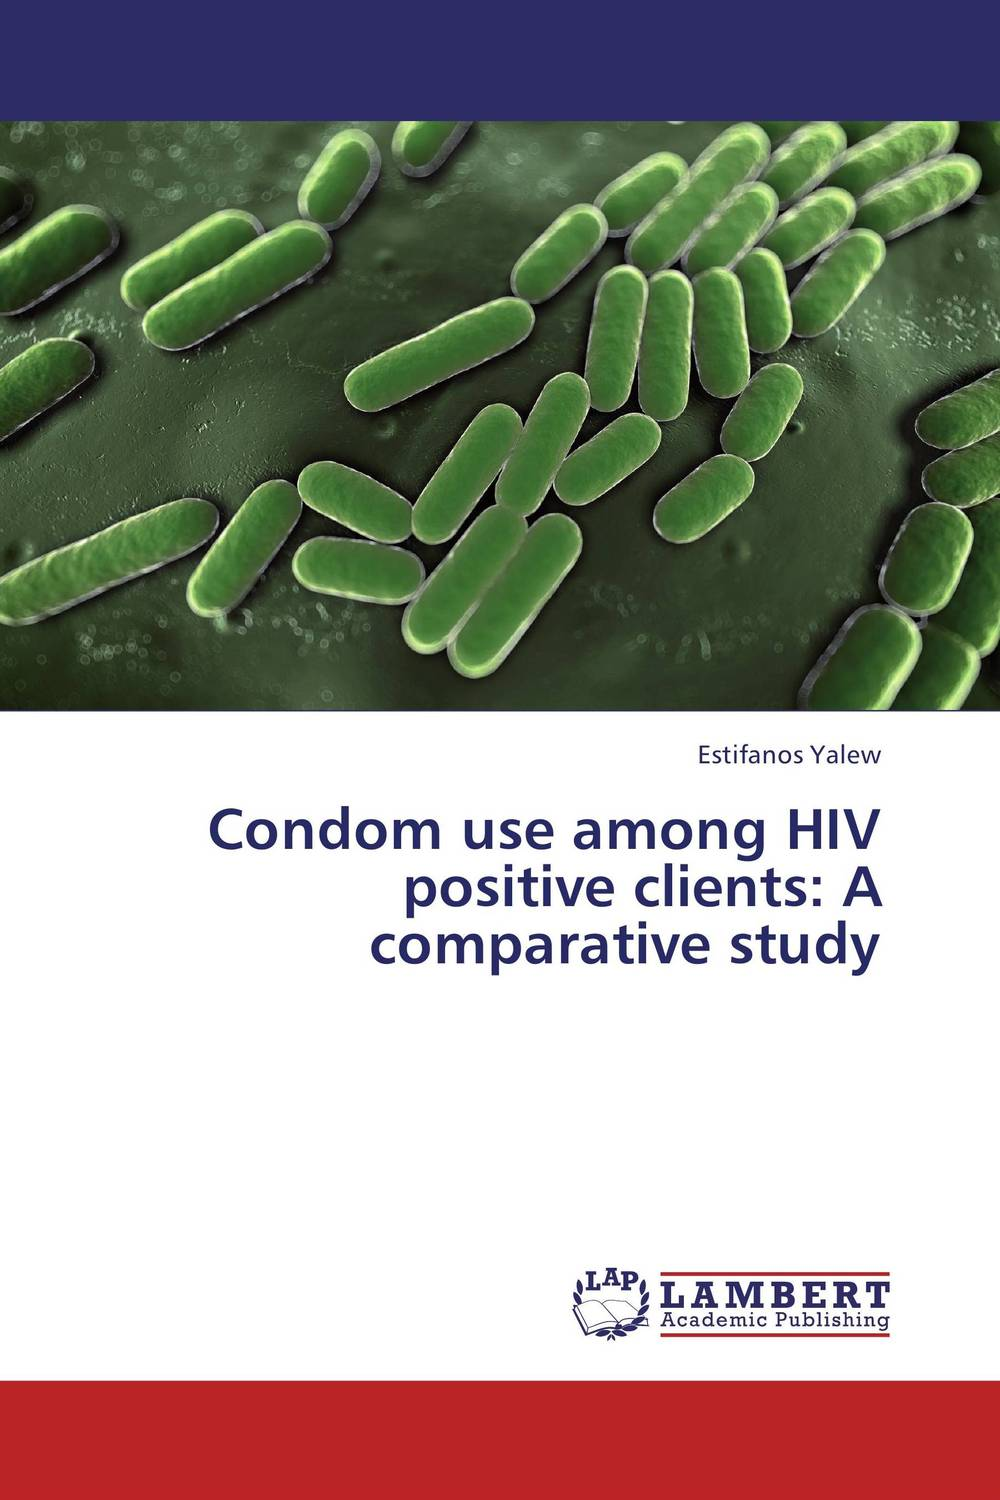 Condom use among HIV positive clients: A comparative study